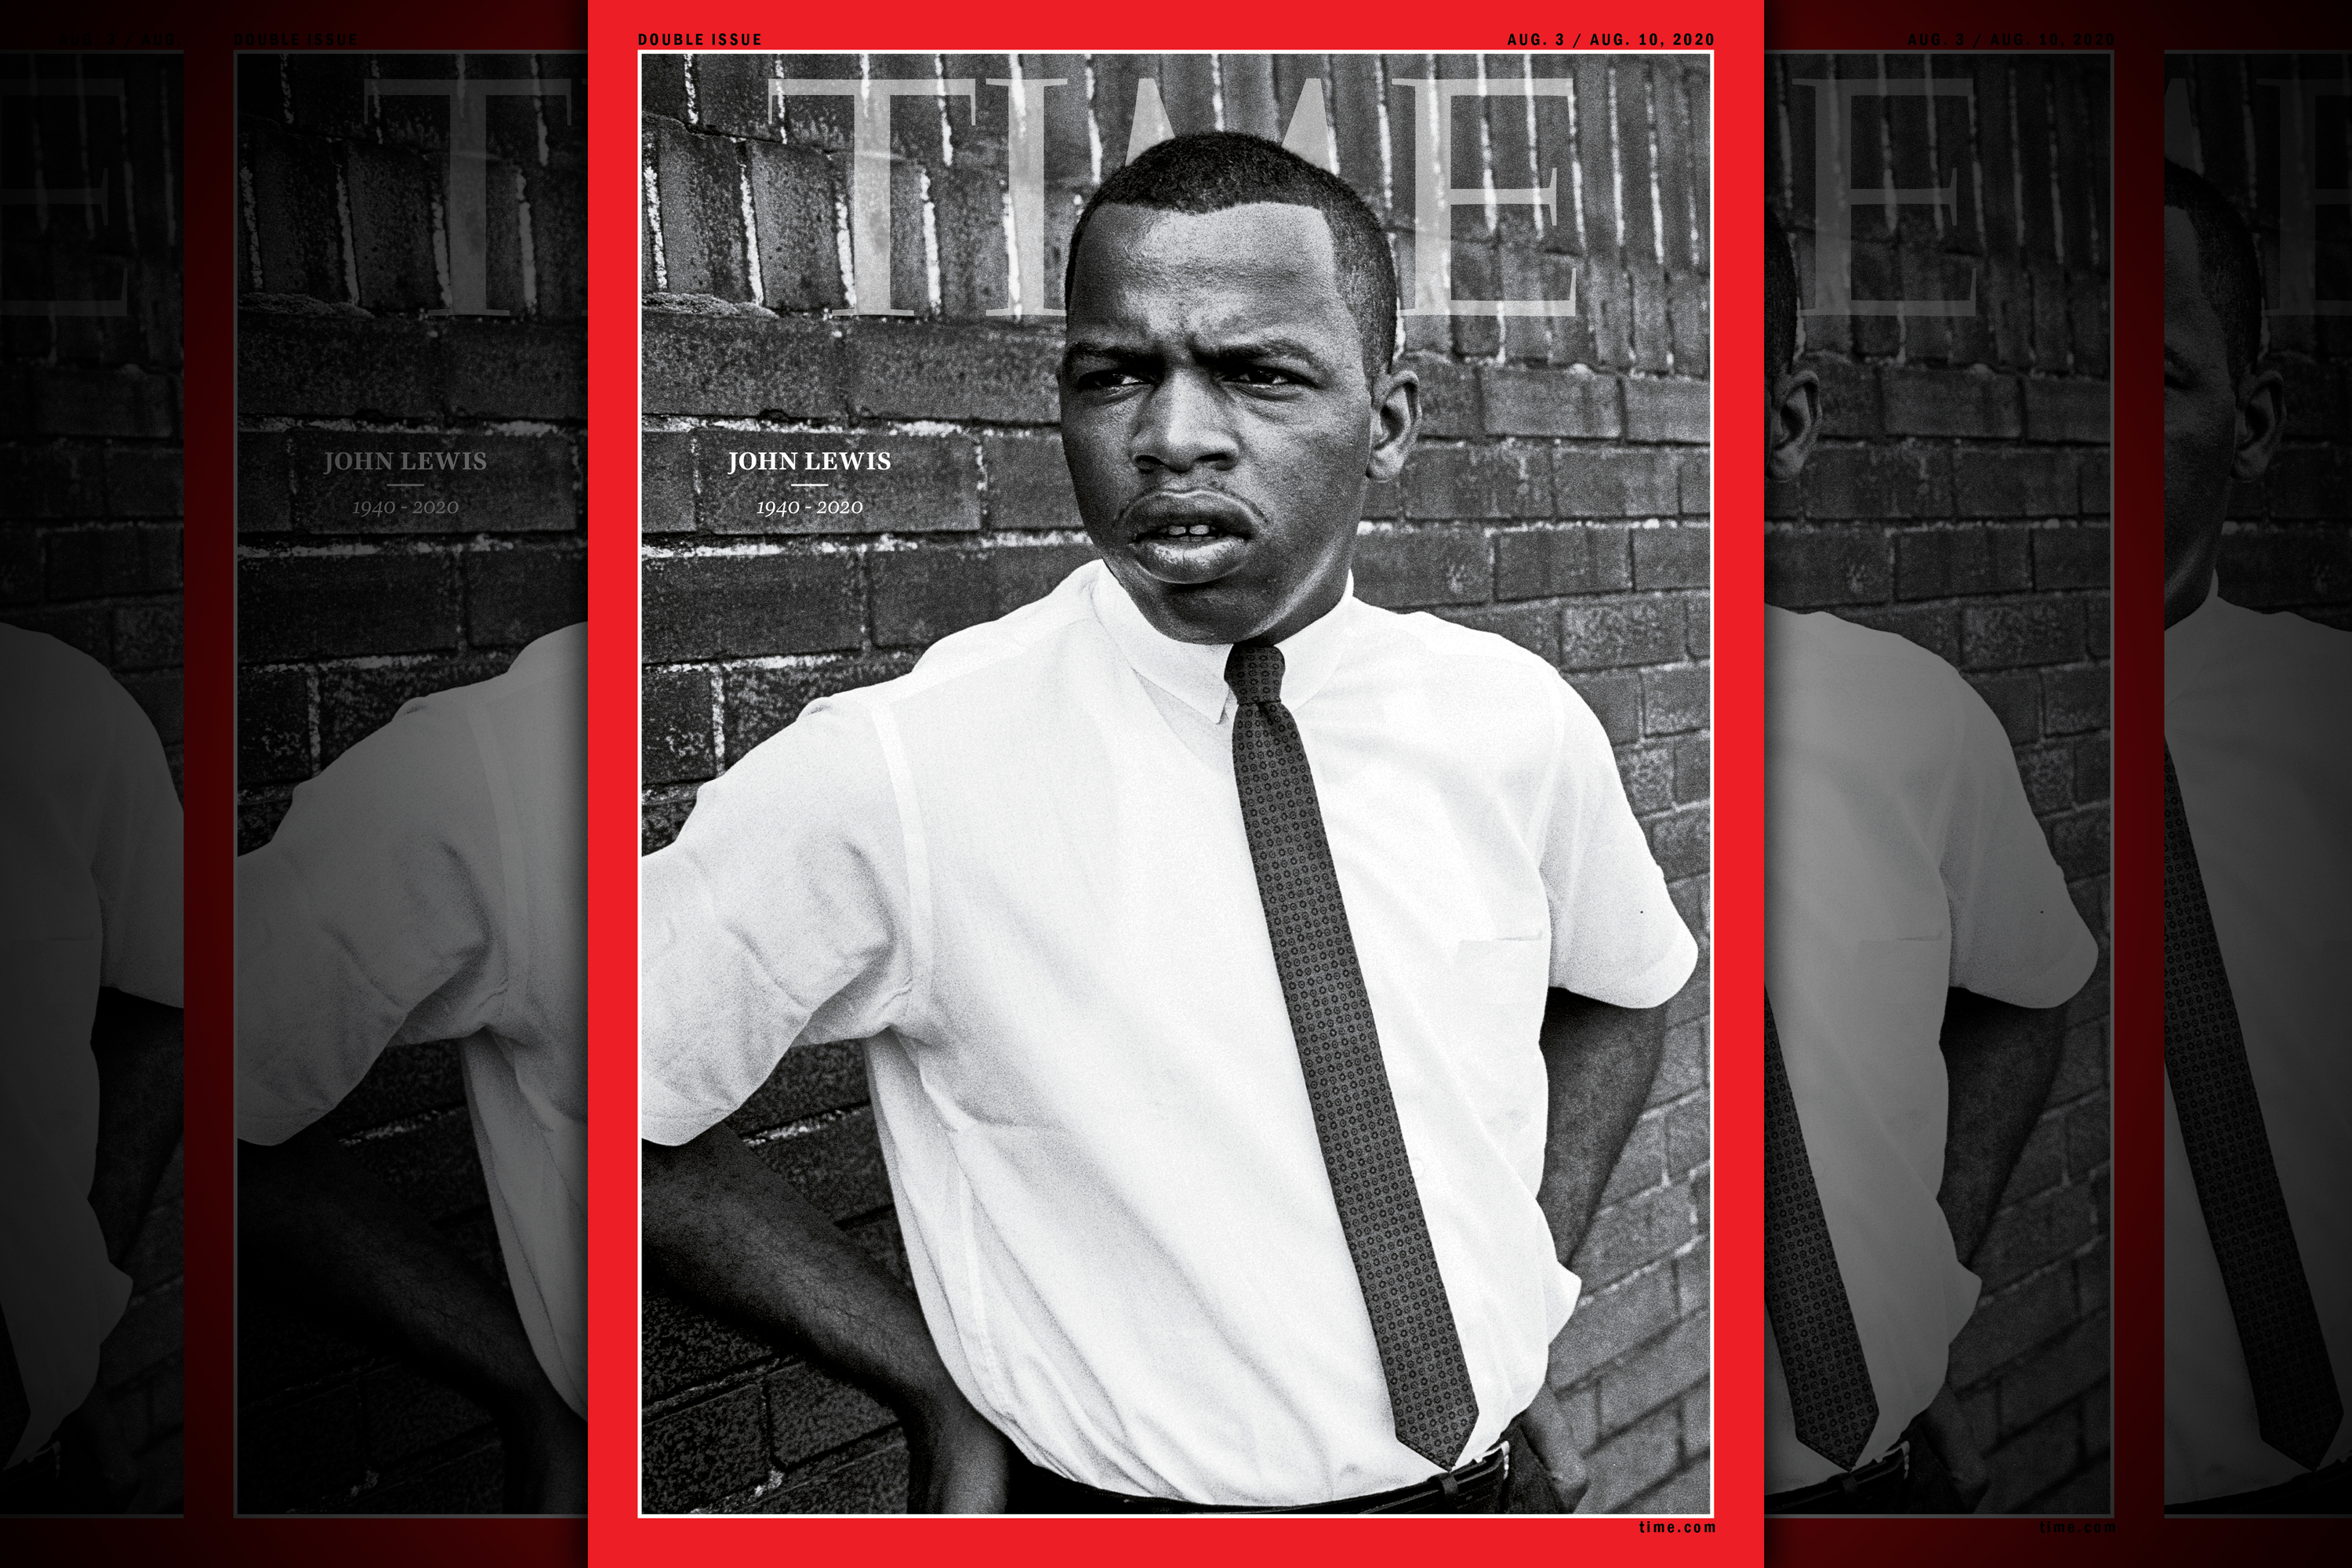 Time pays tribute to John LewisTime pays tribute to civil rights icon John Lewis